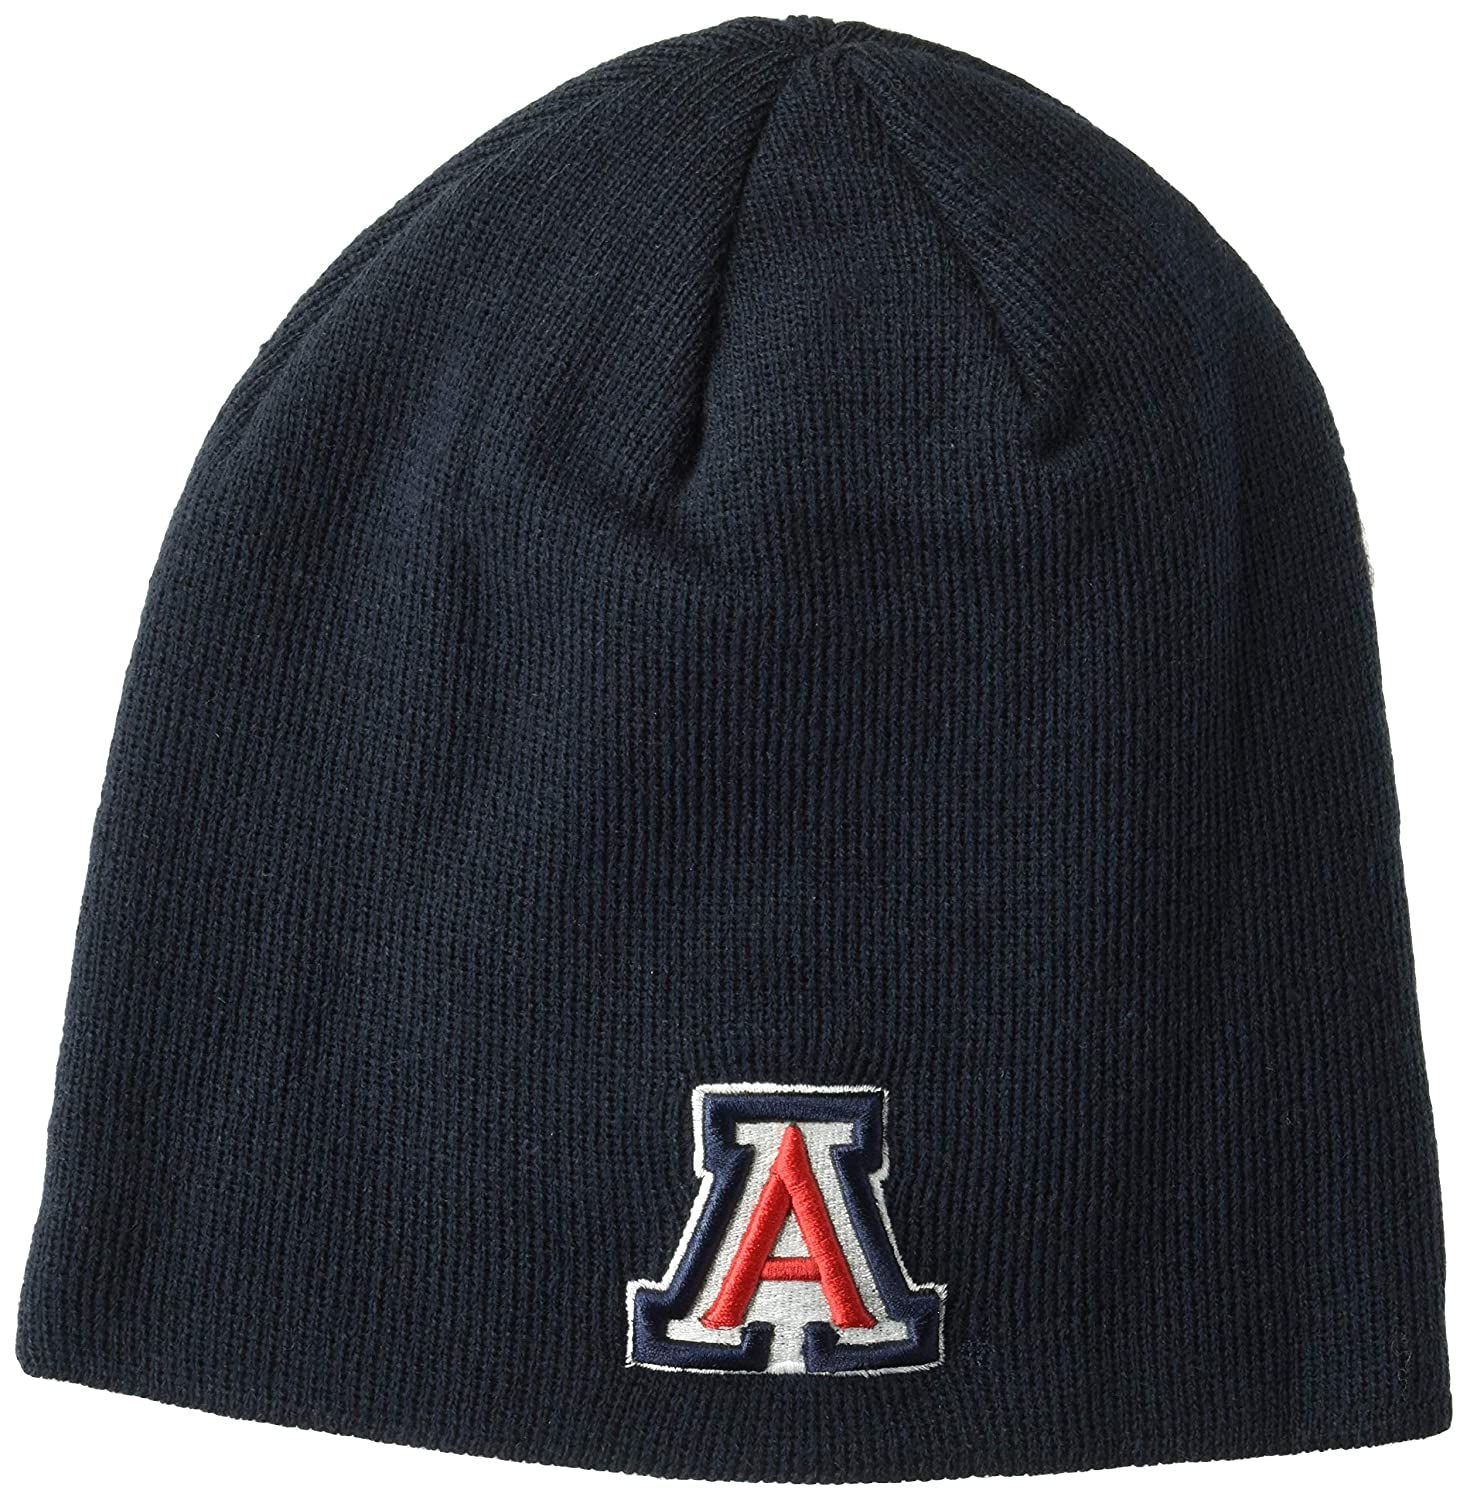 check out b2bc1 736d2 Amazon.com   ZHATS NCAA Arizona Wildcats Edge Knit Beanie, Adjustable, Team  Color   Sports   Outdoors